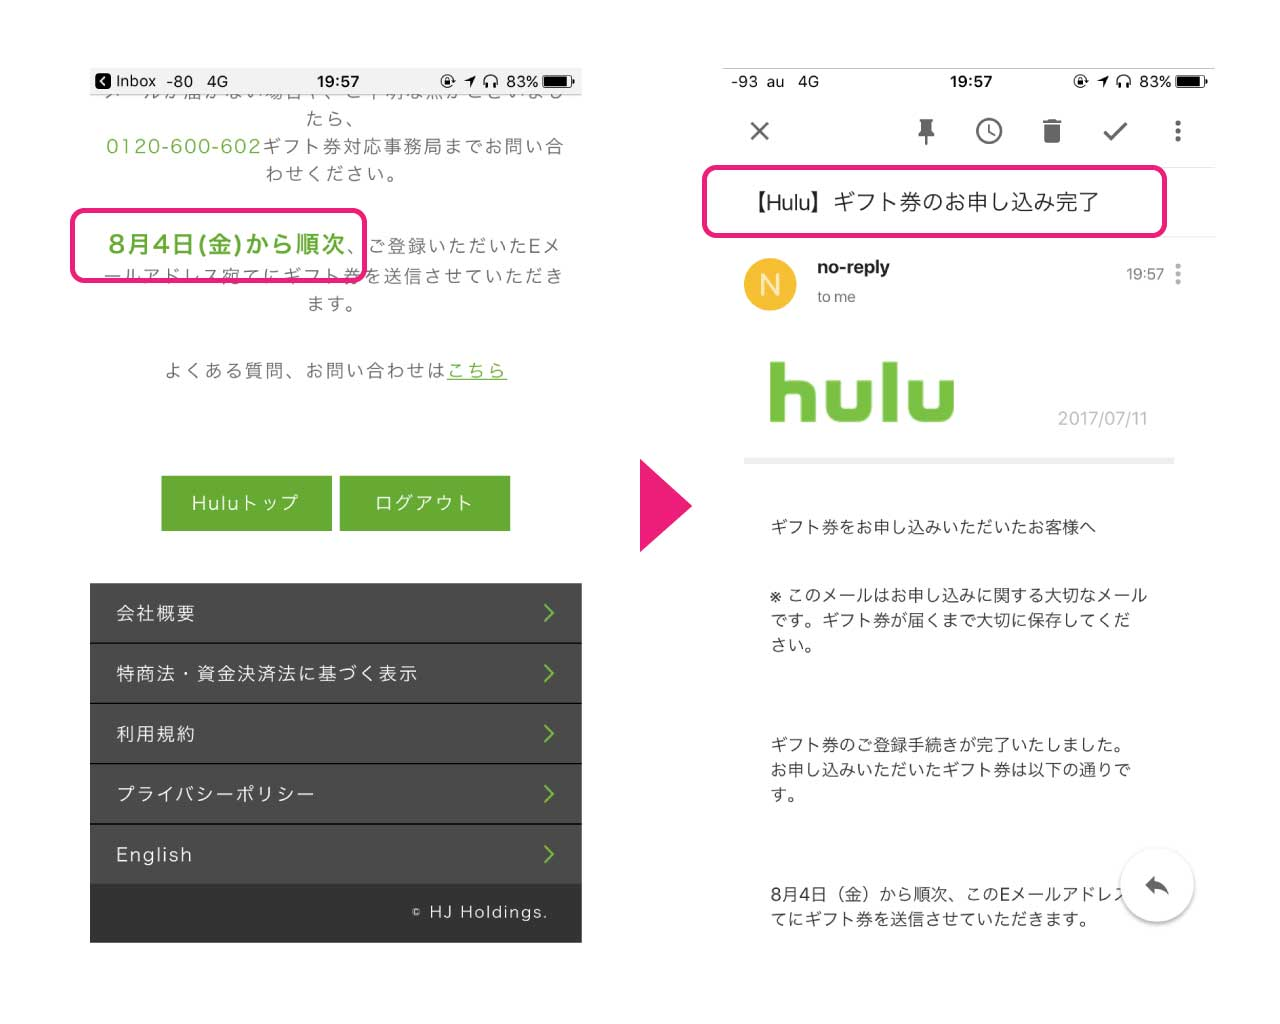 hulu-system-trouble-ticket-request-finish-8